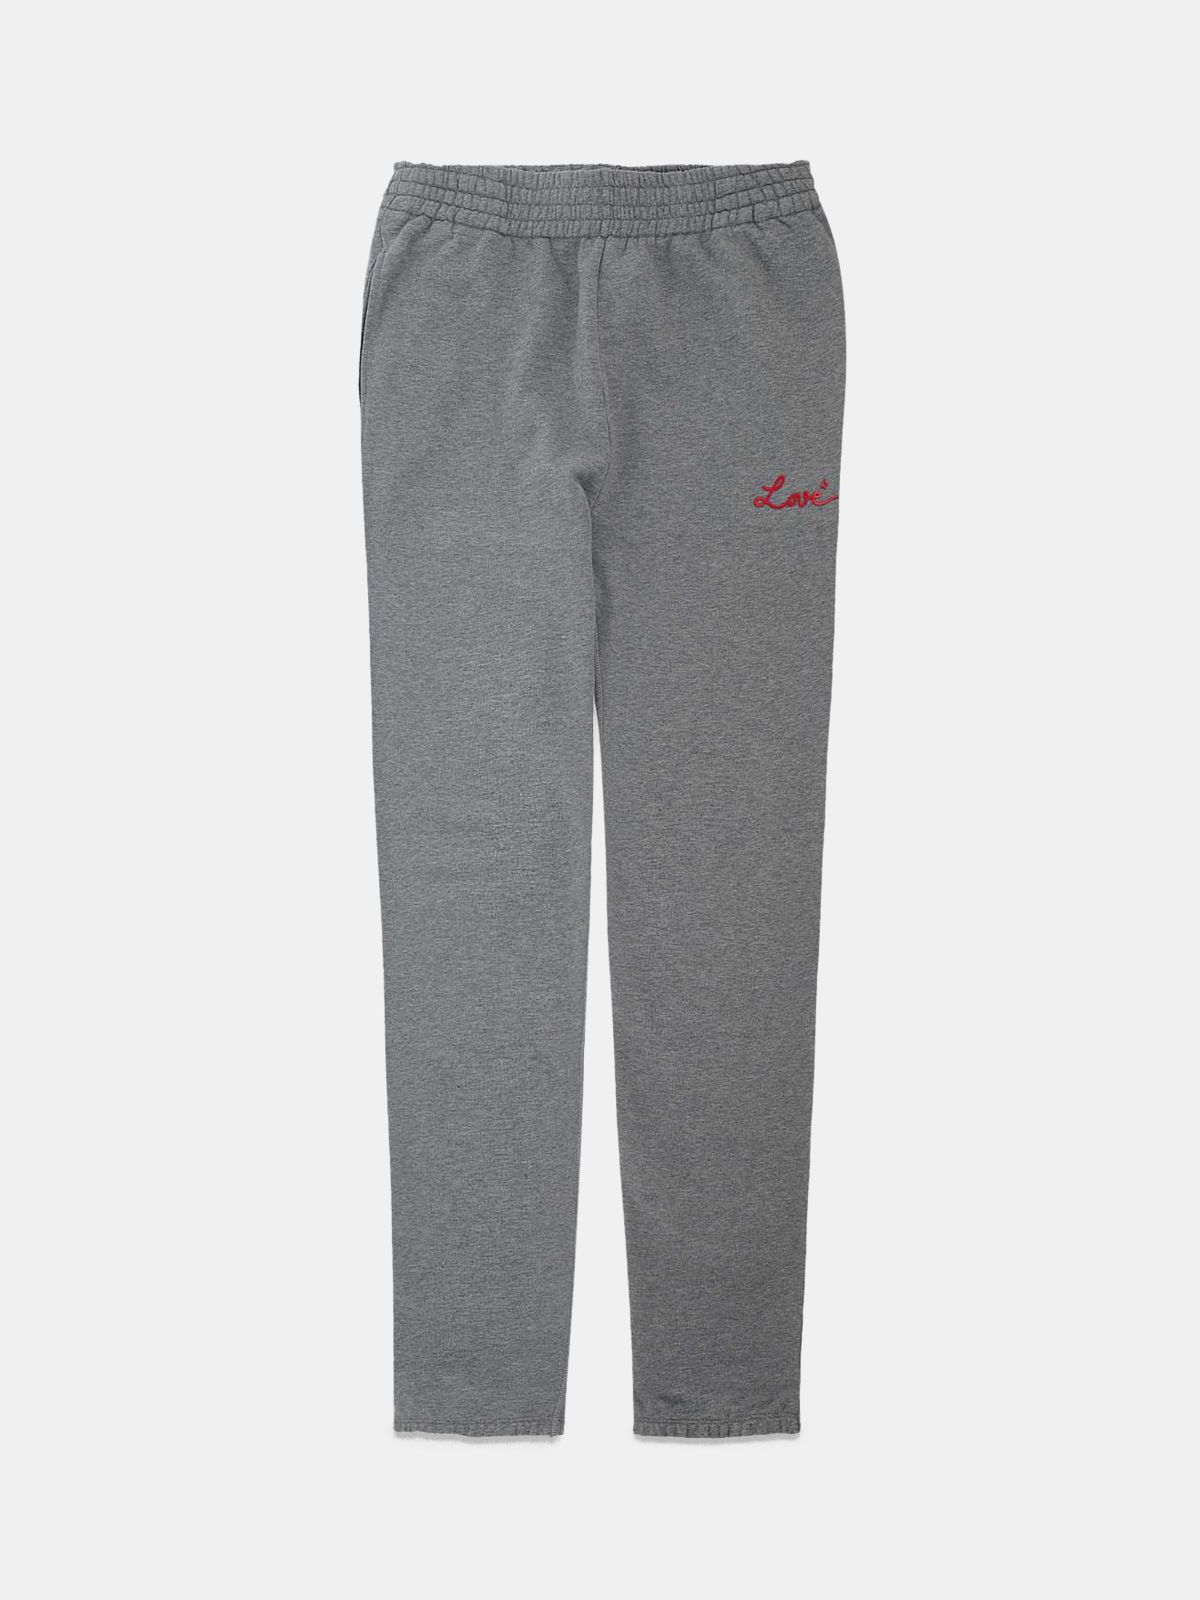 Golden Goose - Grey Hamm joggers with Love embroidery in